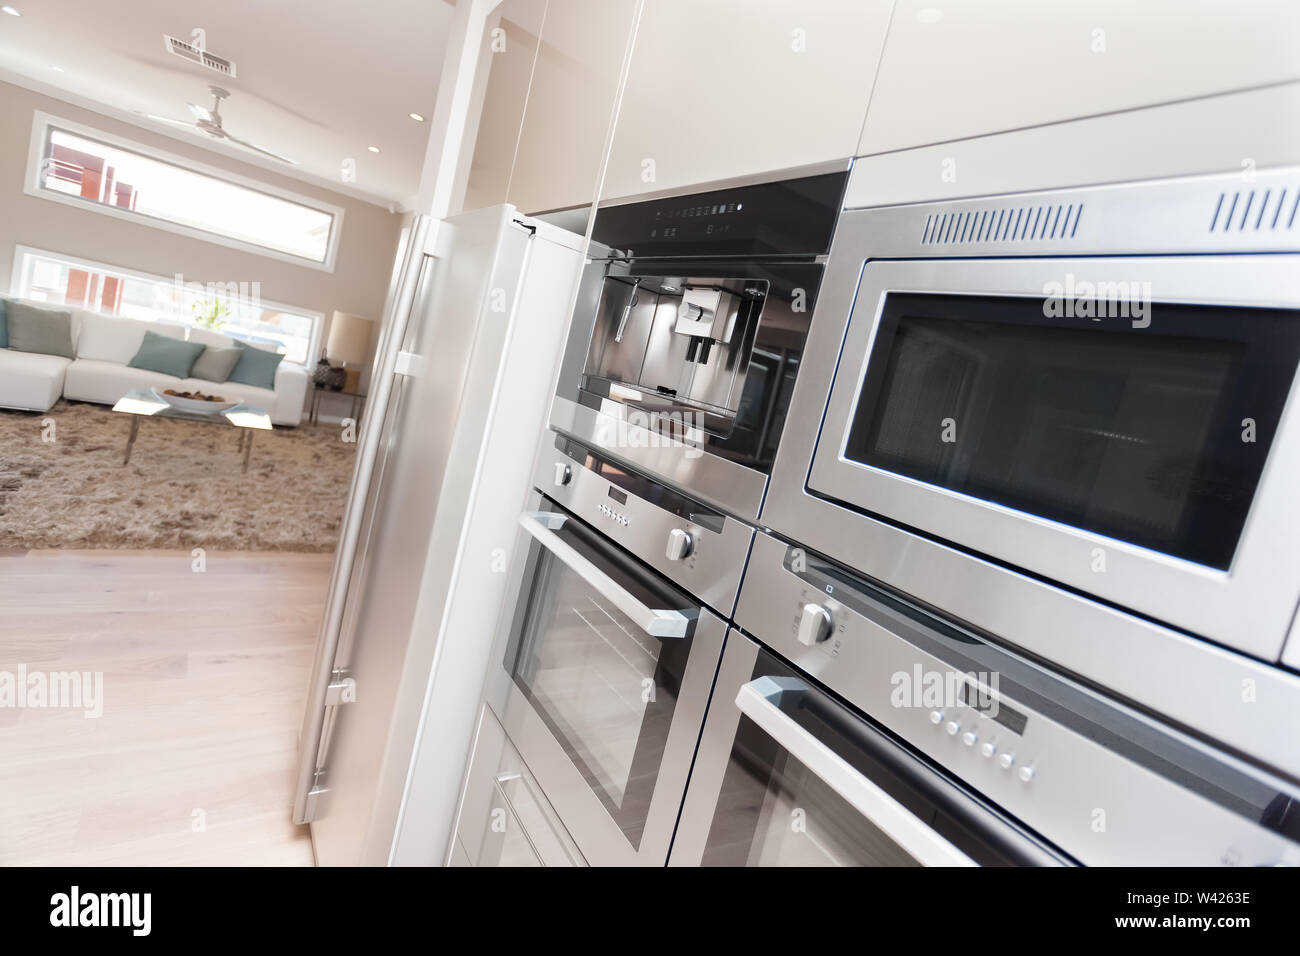 https www alamy com silver microwave ovens and pantry cupboards installed in the wall of in the kitchen the refrigerator is fixed next to the oven and under the pantry c image260662850 html